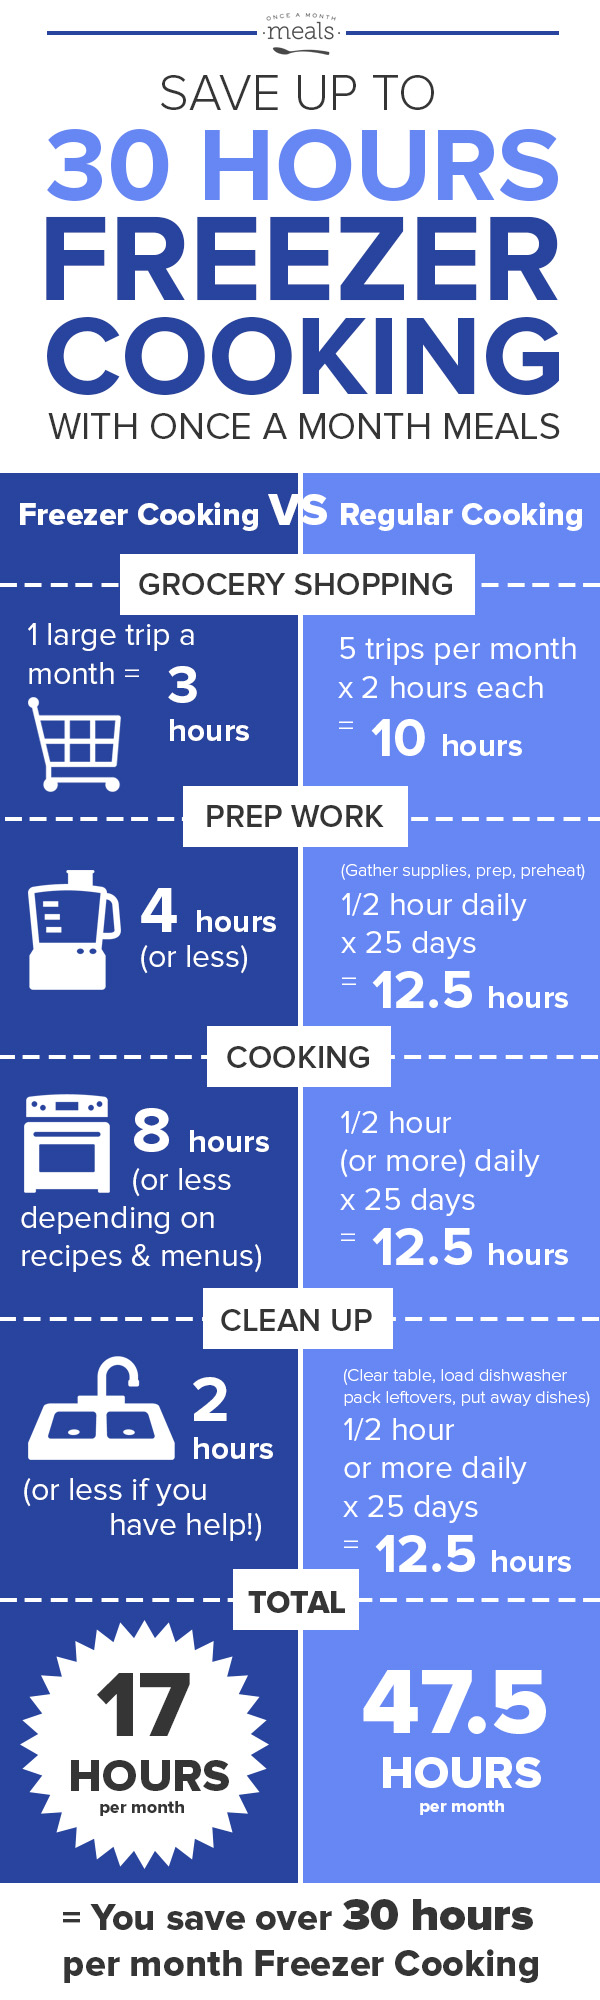 Save Time Freezer Cooking - Over 30 Hours!